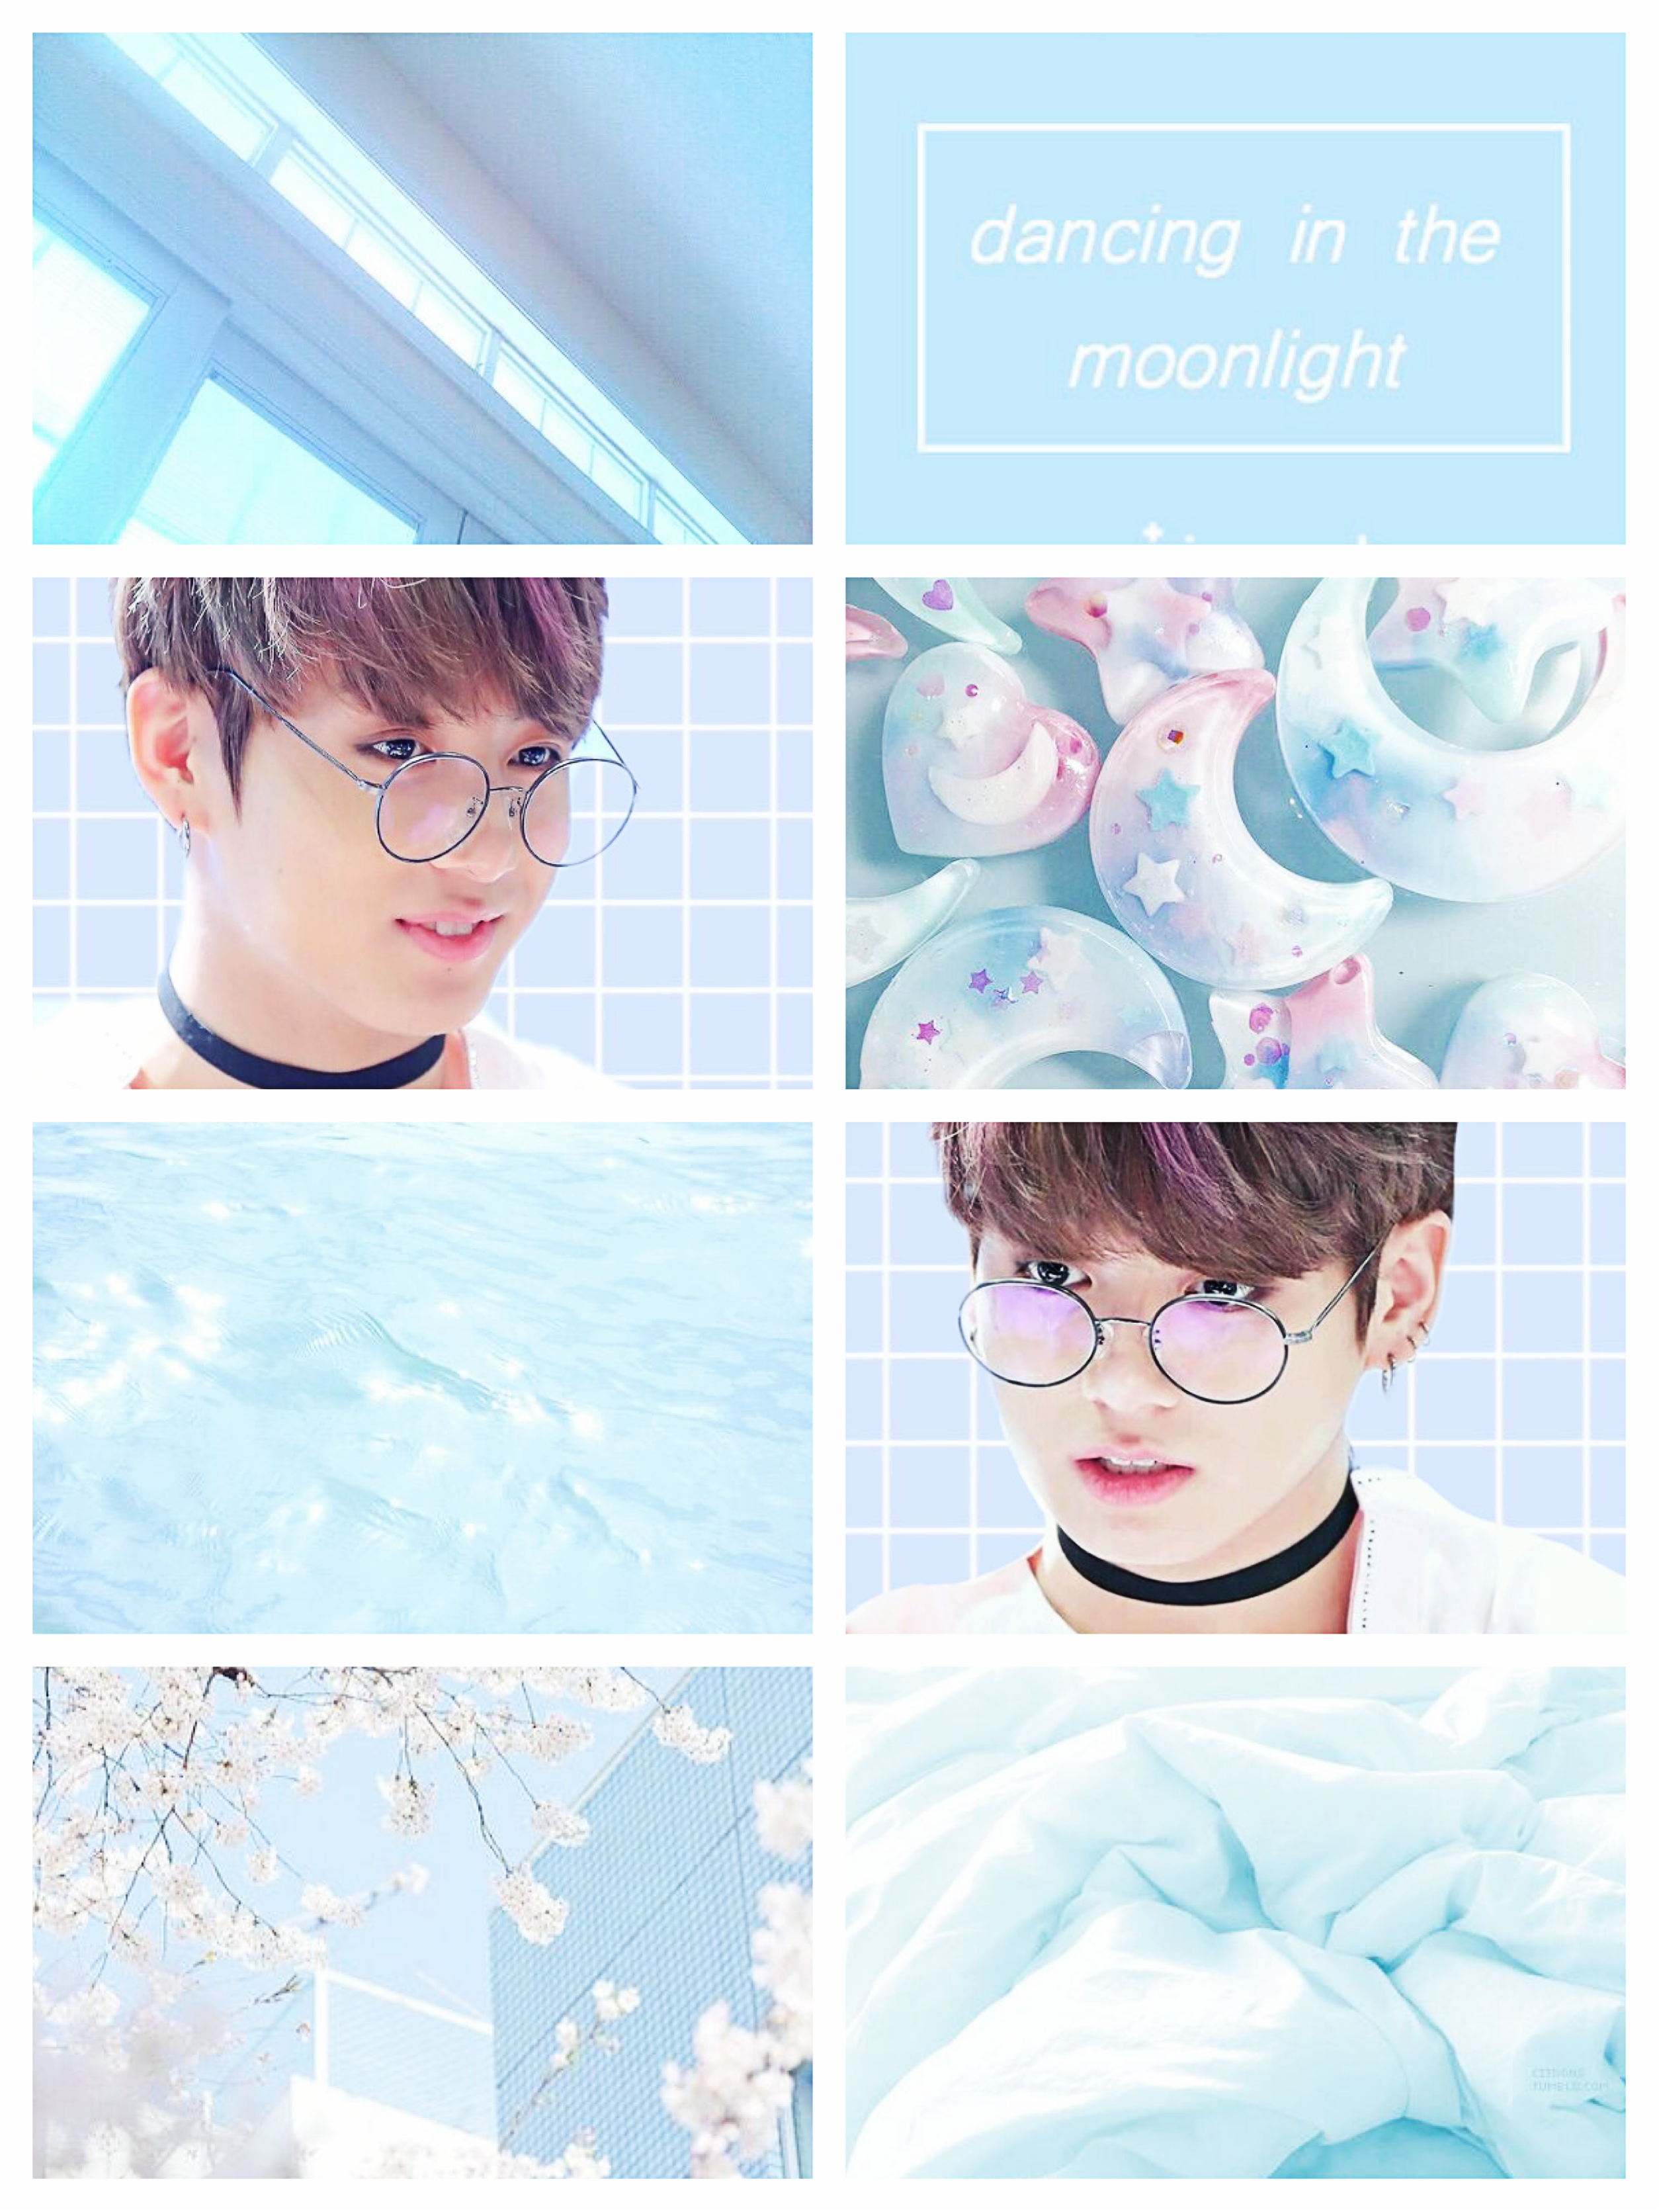 Pin by 🅁🄰🄴 on bts aesthetics. Jungkook aesthetic